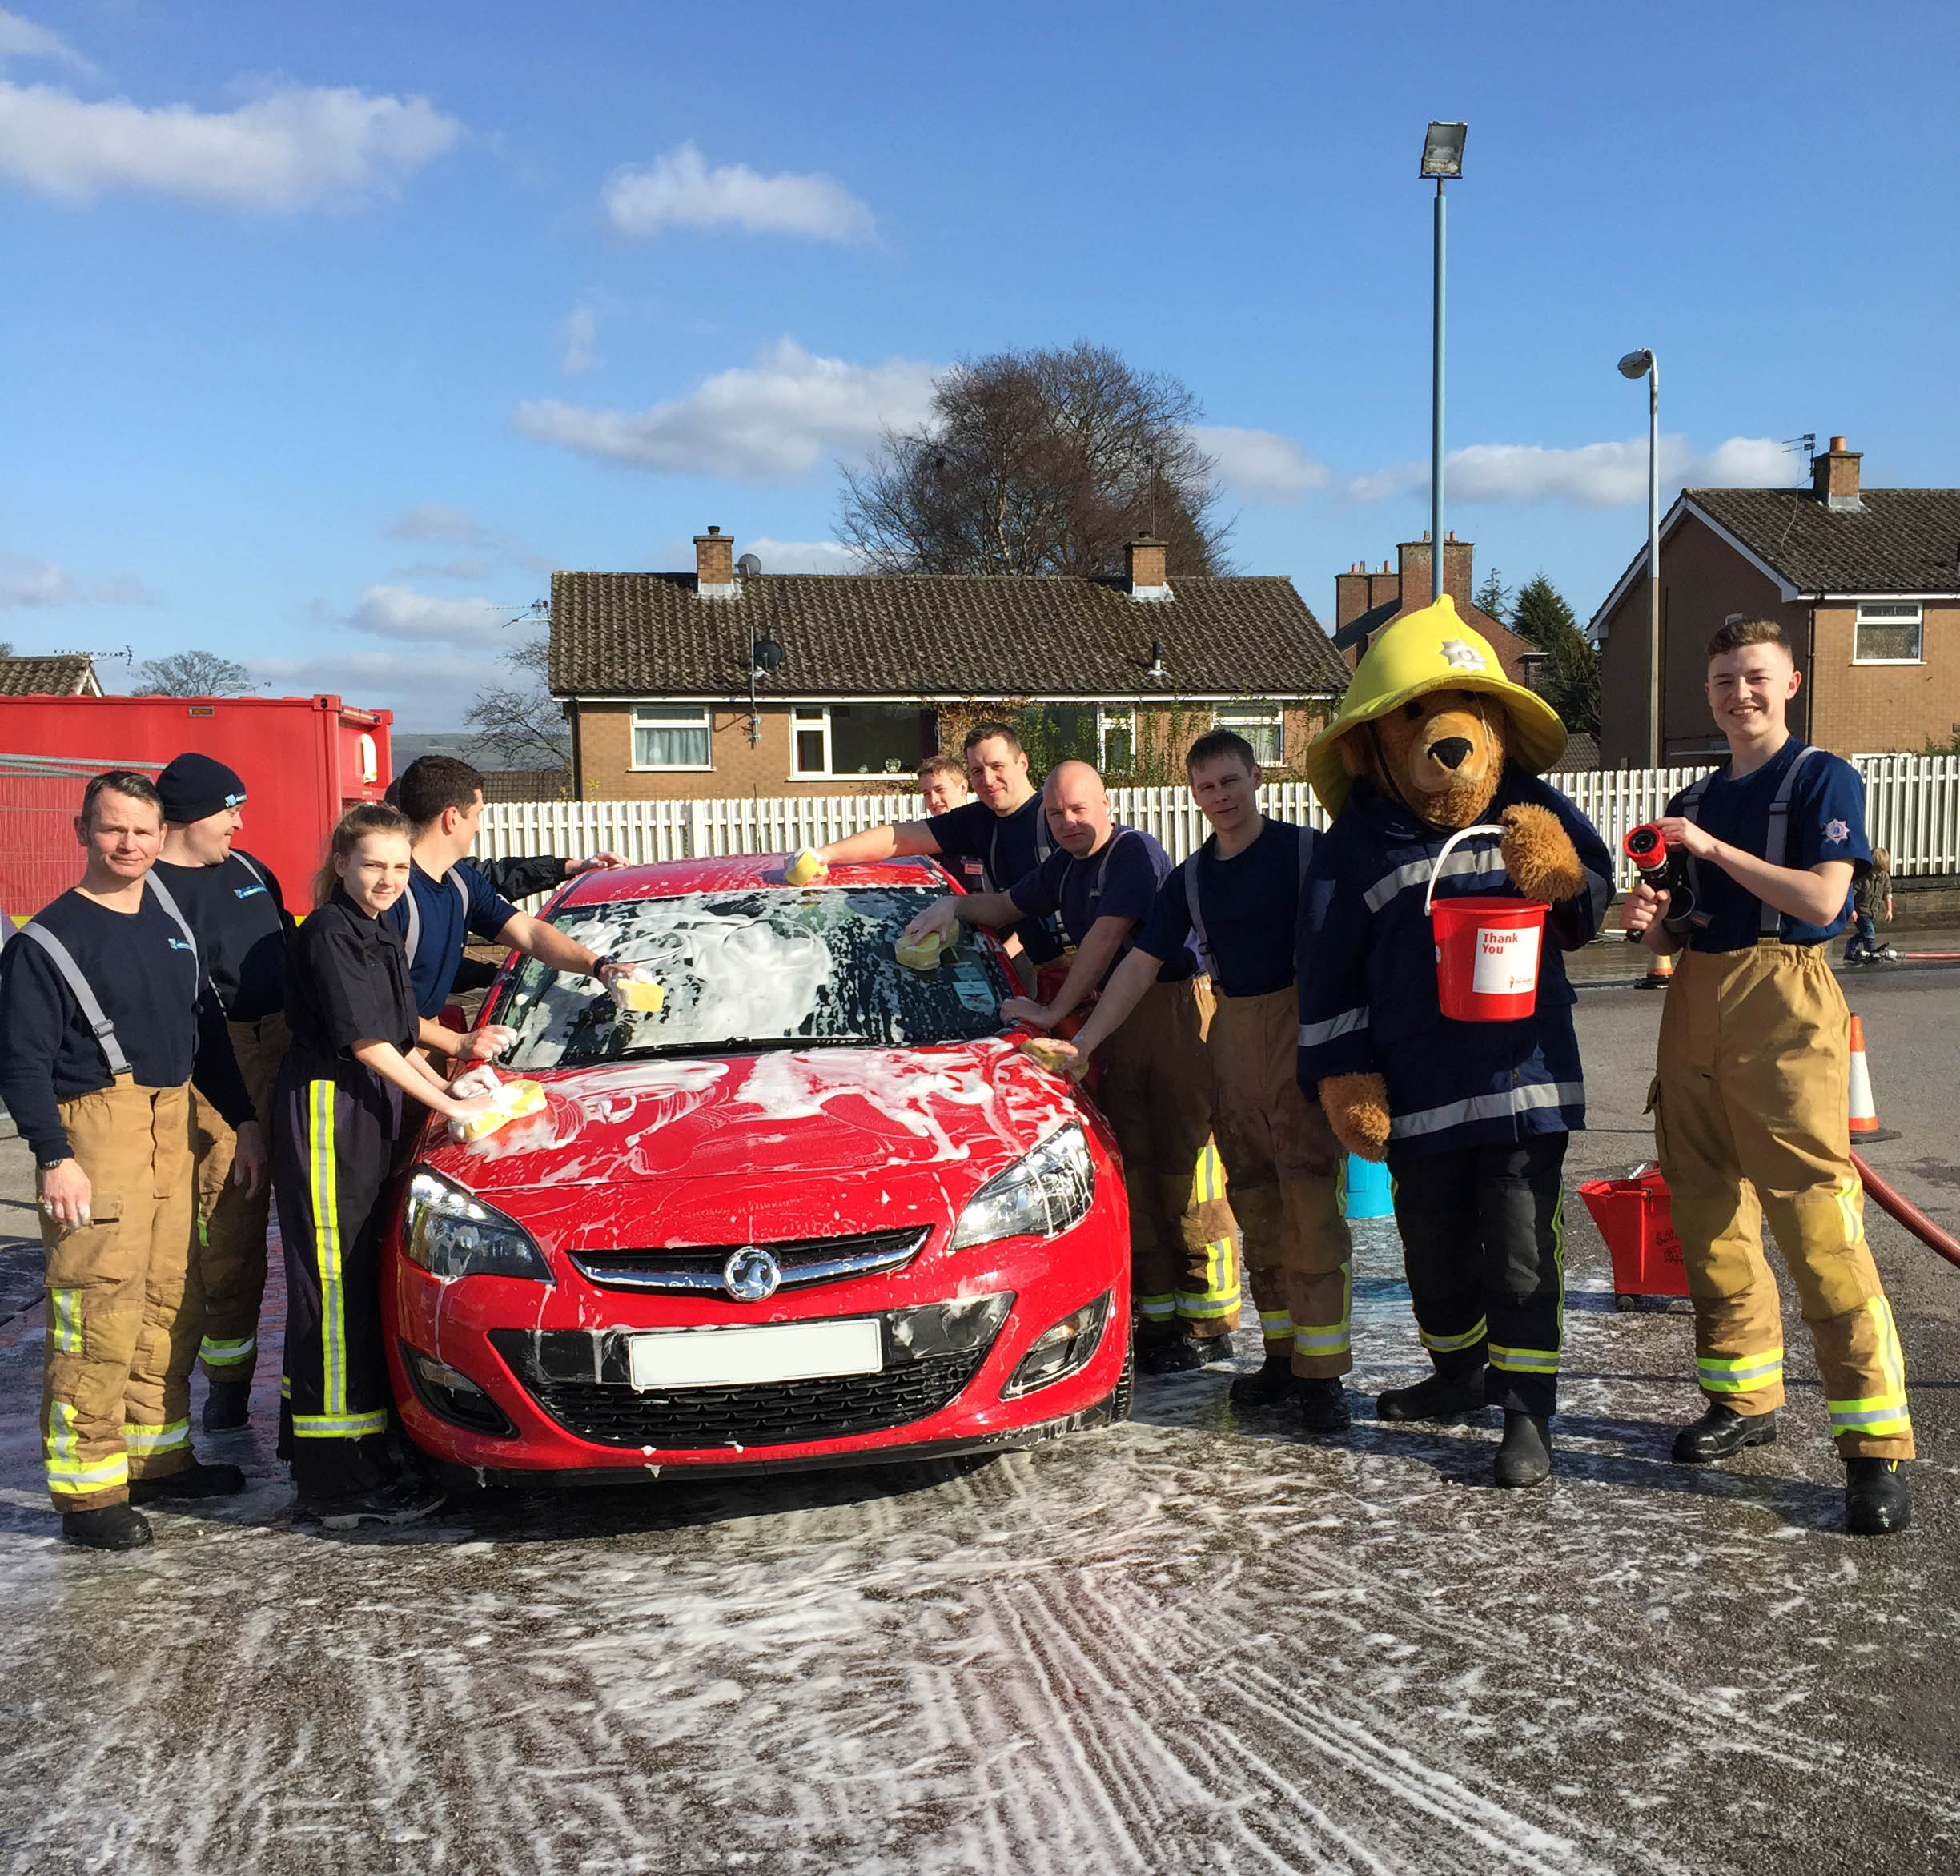 Charity Car Wash At Congleton Fire Station